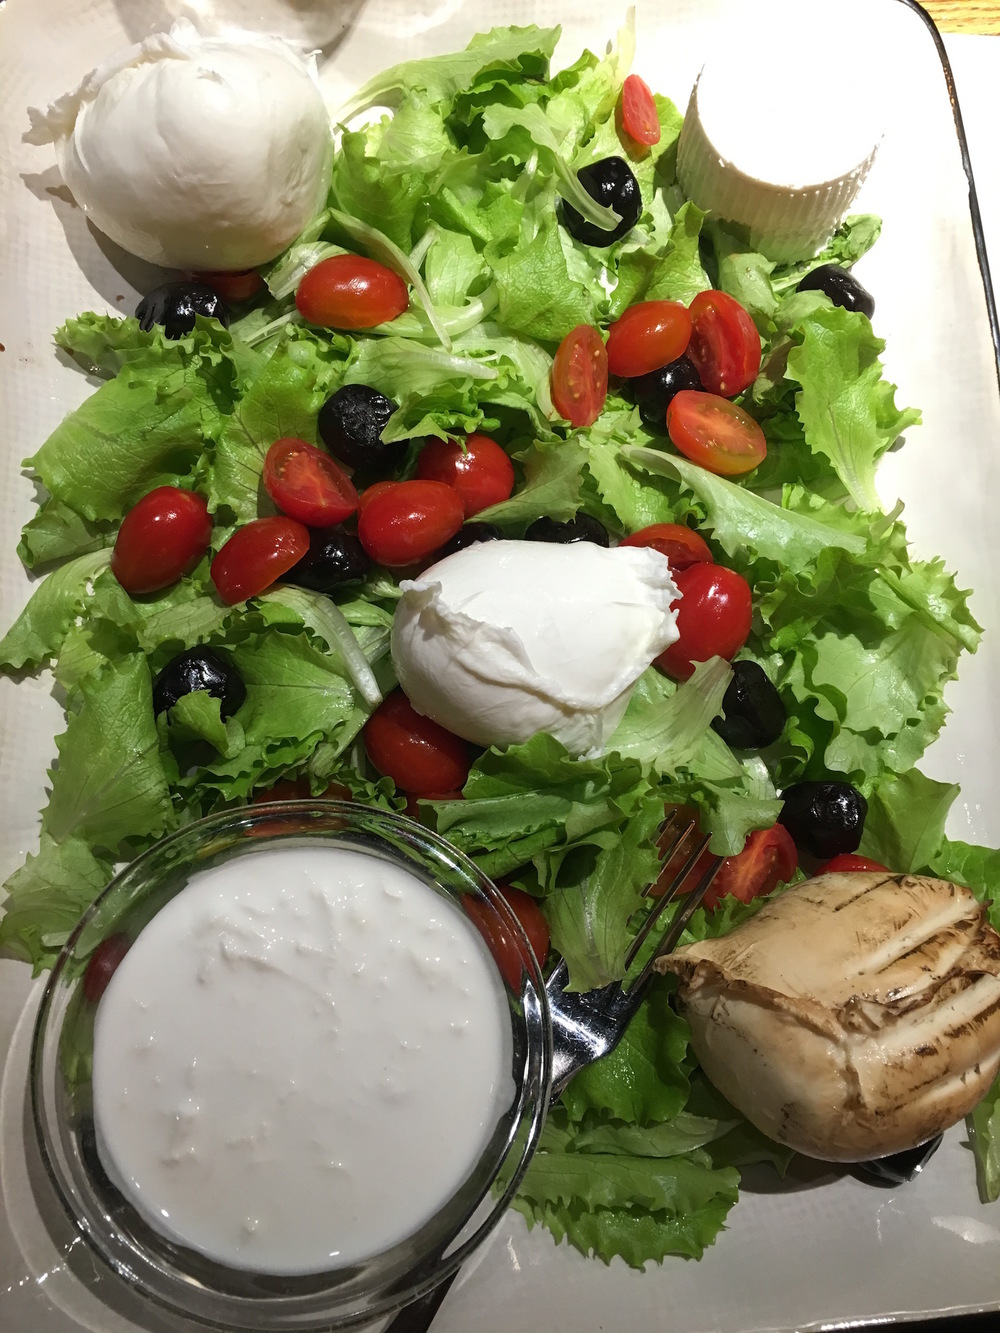 The mozzarella tasting platter